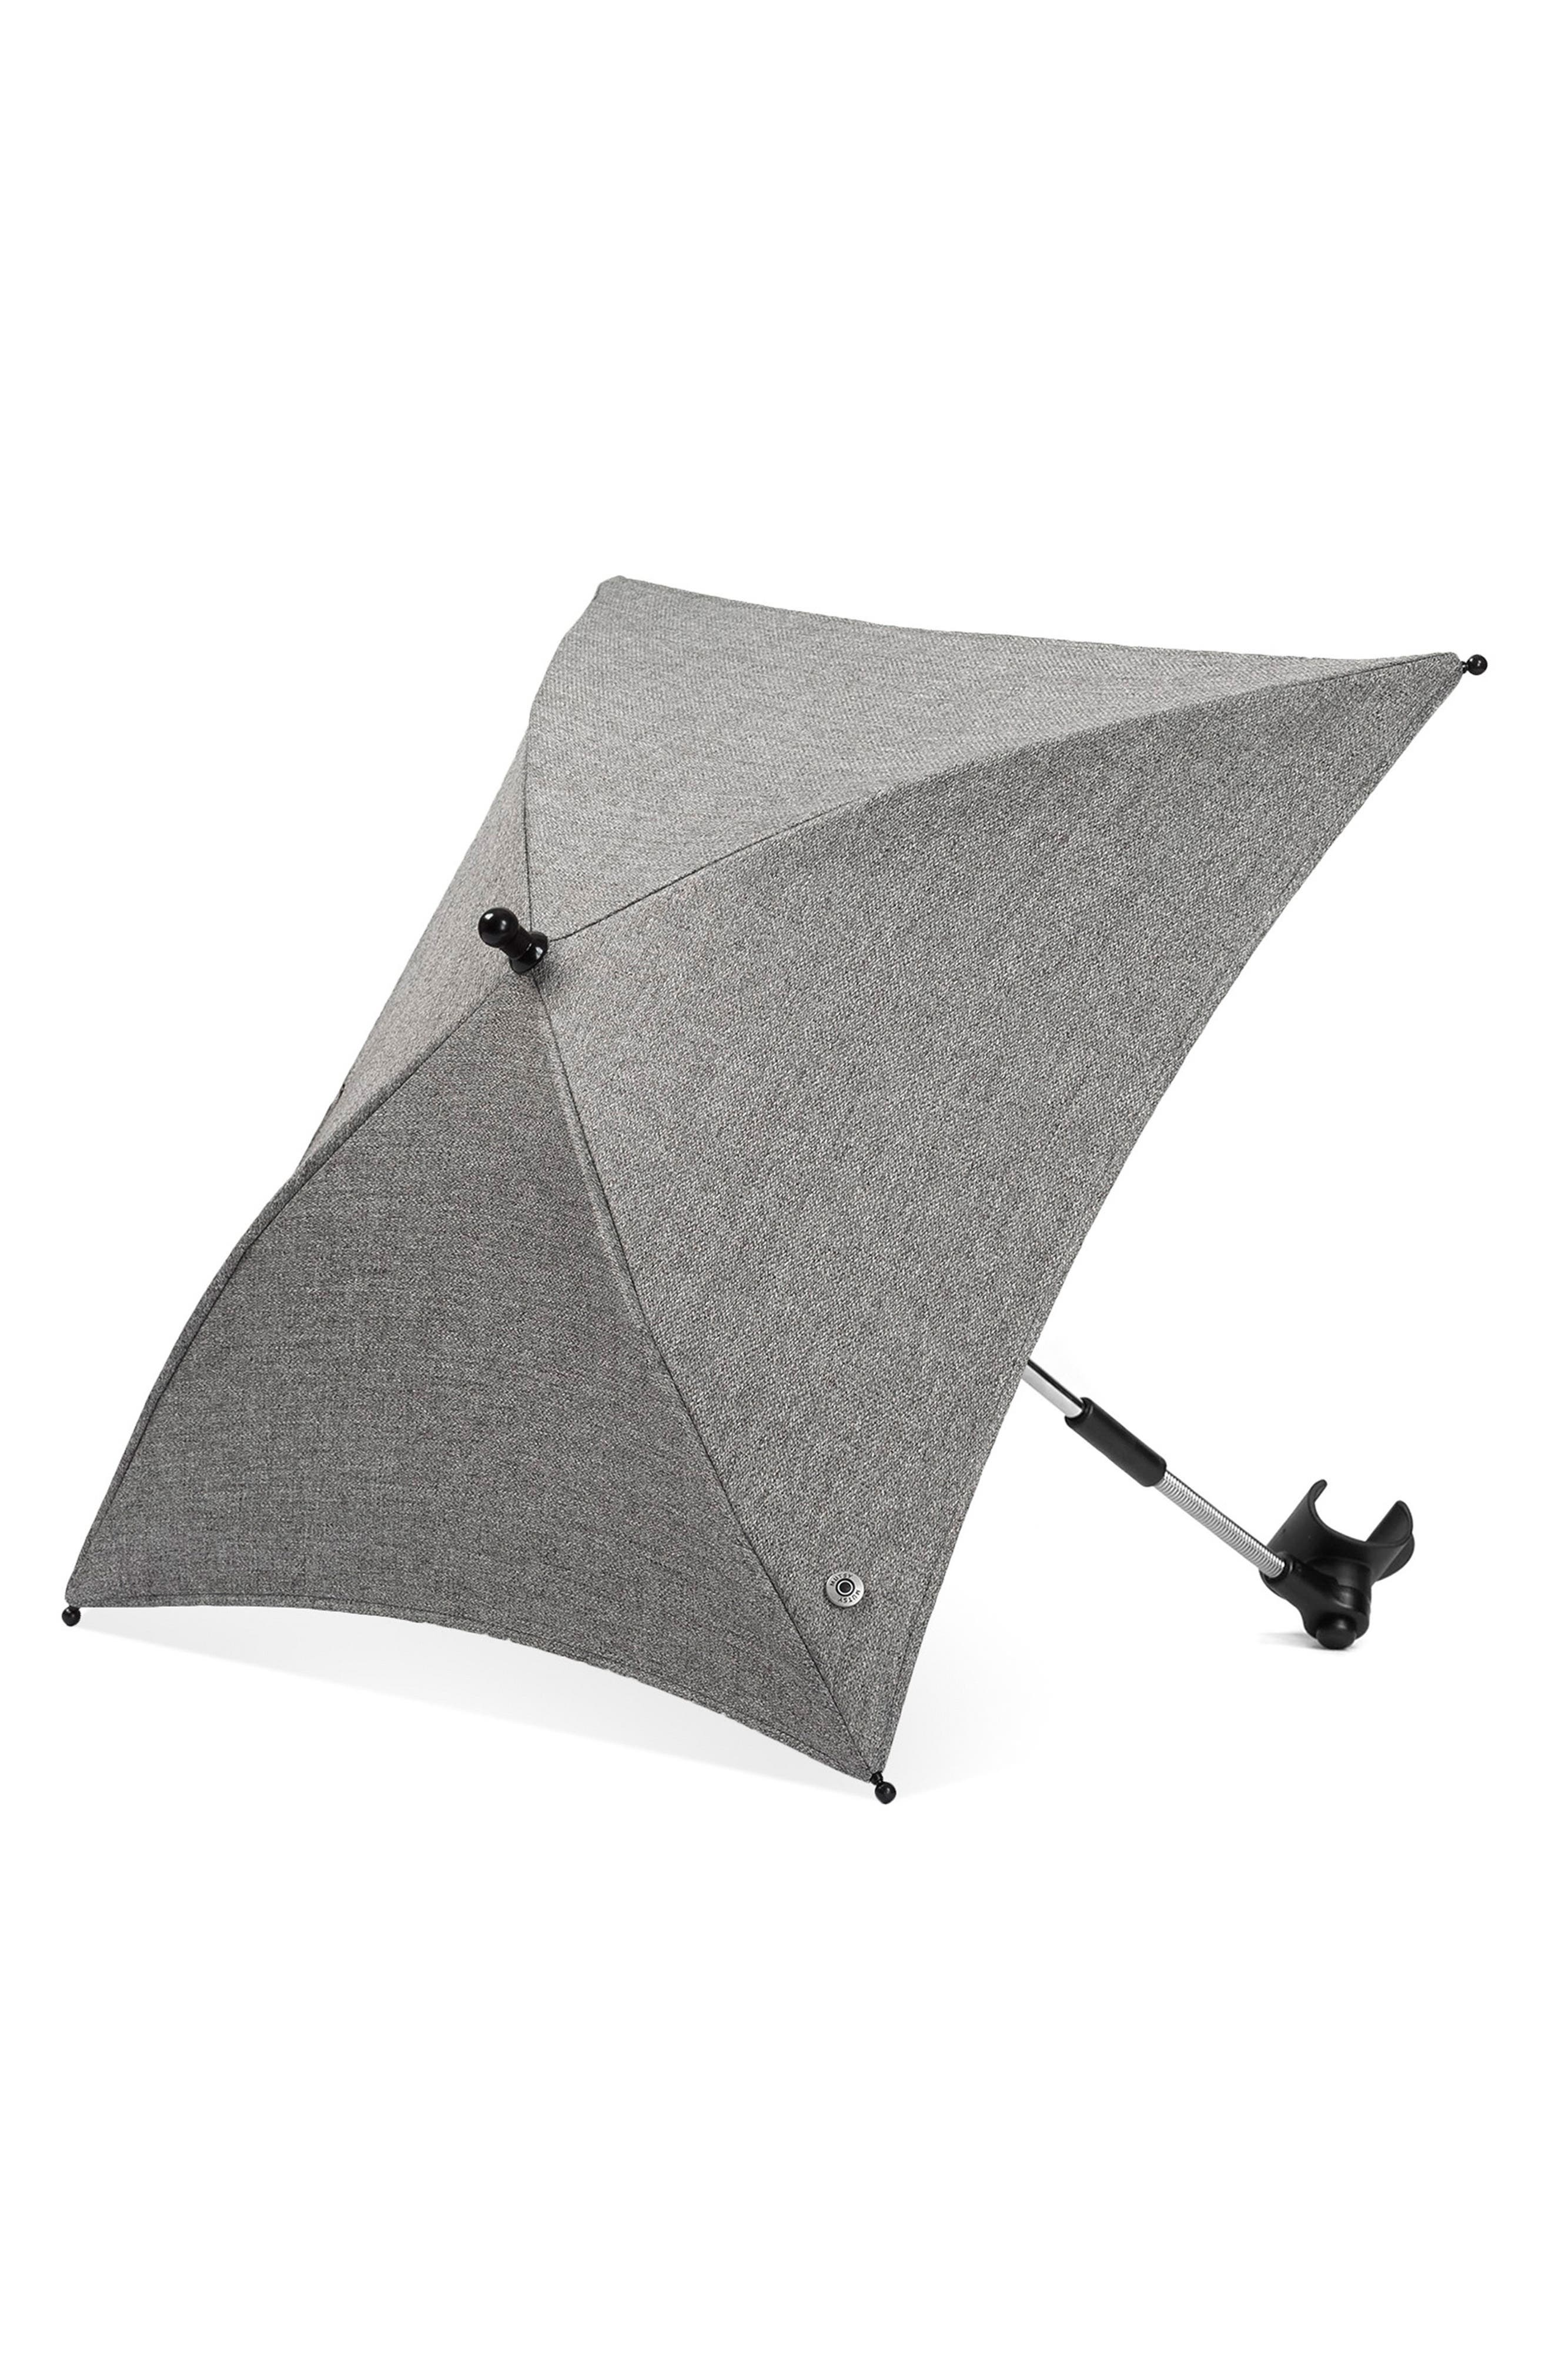 Igo - Heritage Stroller Umbrella,                         Main,                         color, 020